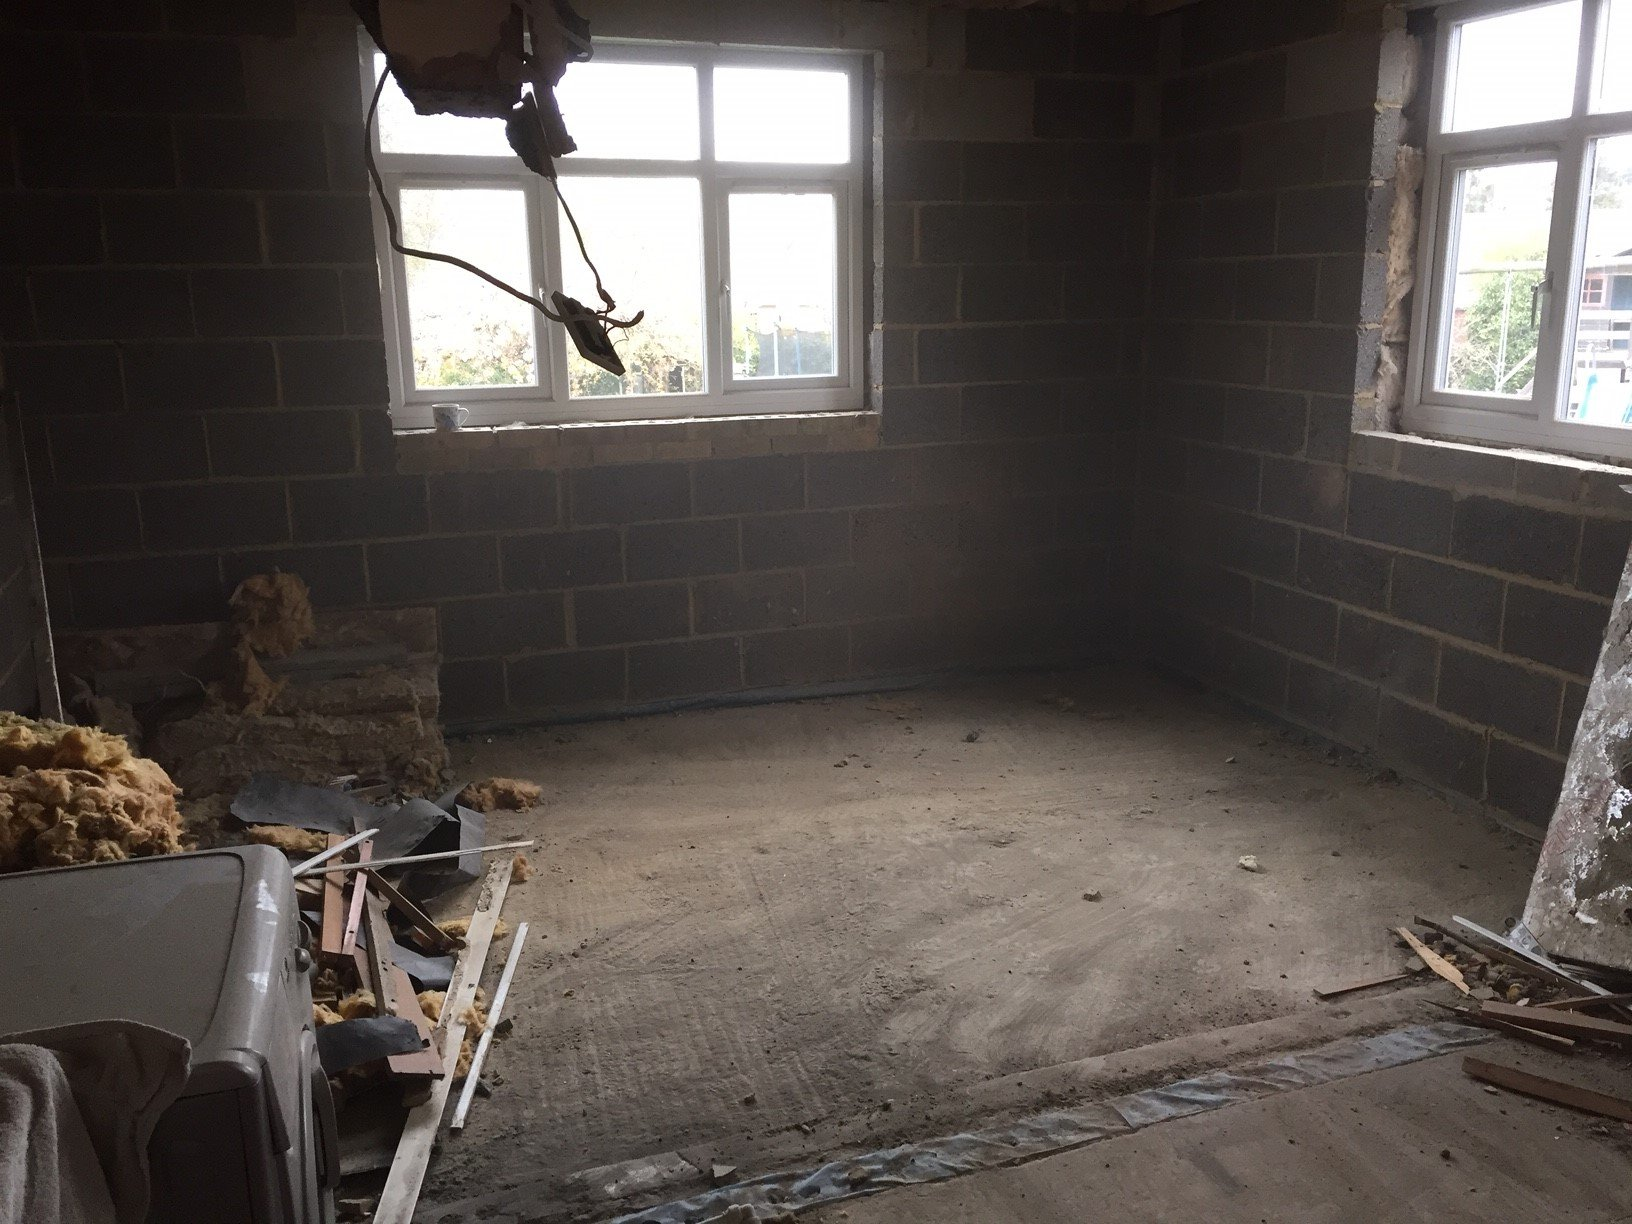 room after the removal of construction waste